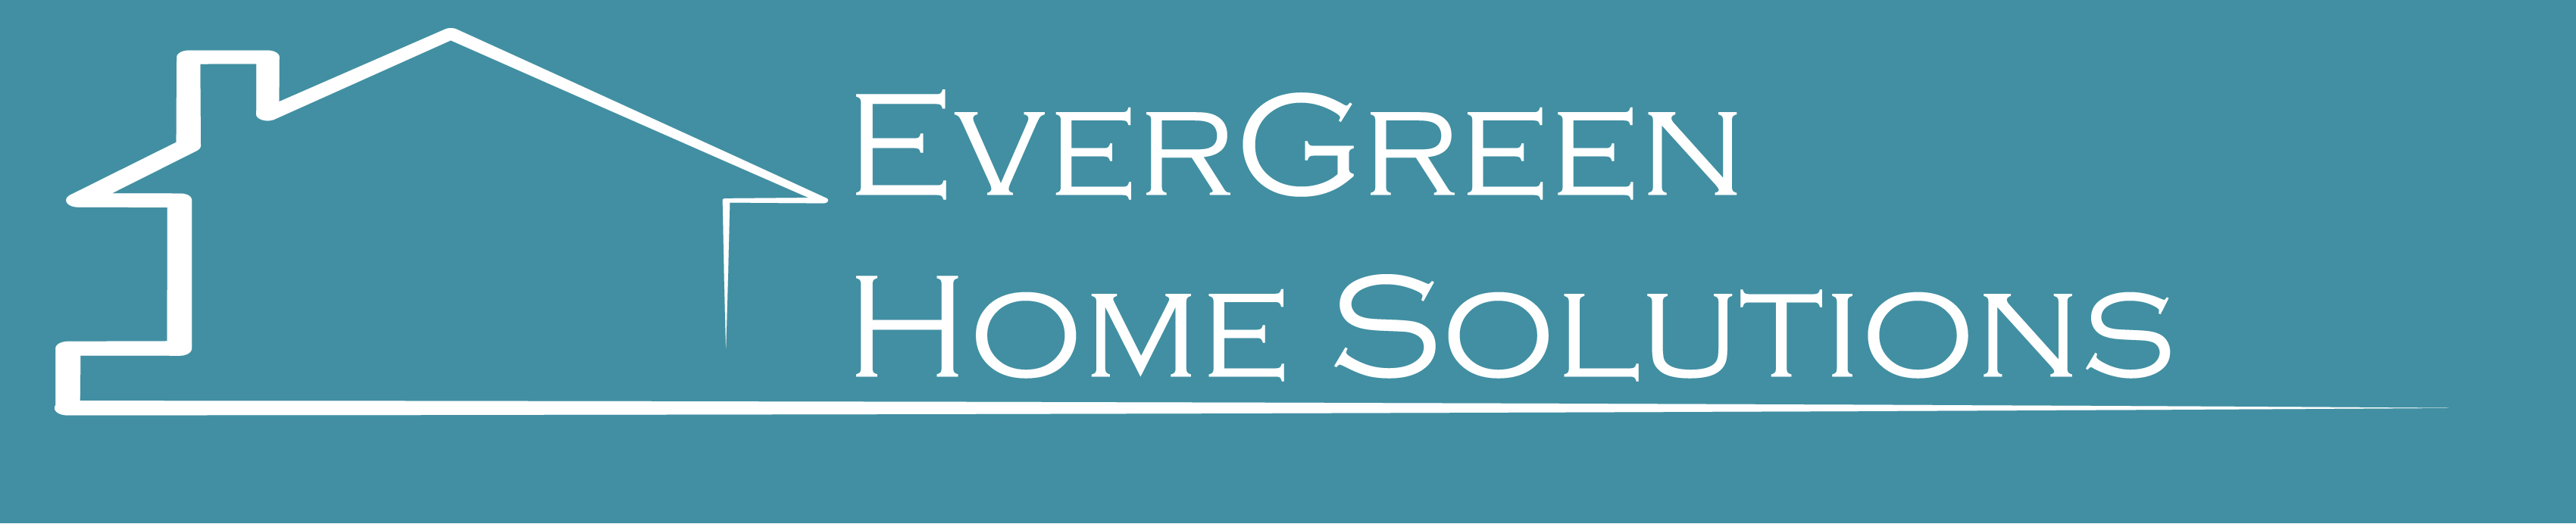 Evergreen Home Solutions